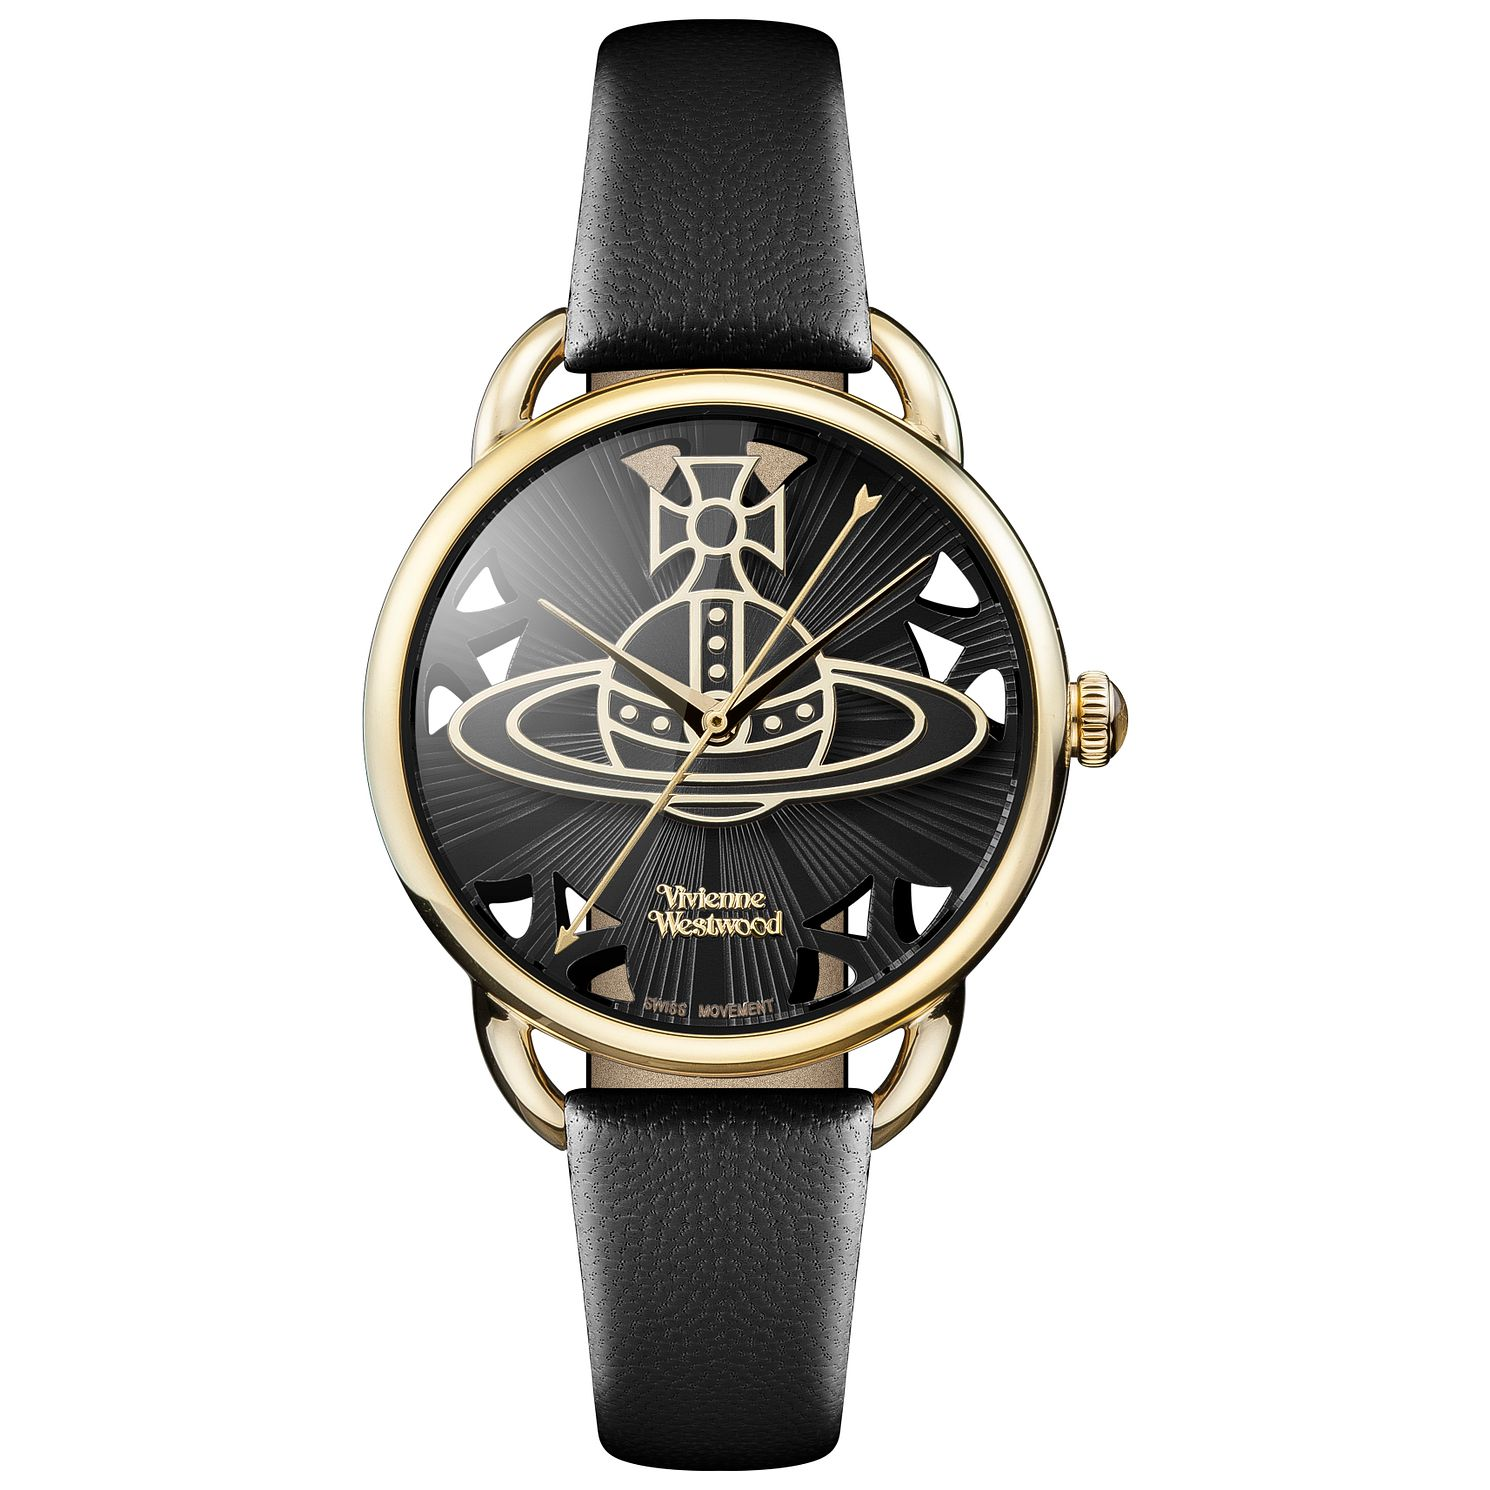 Vivienne Westwood Ladies' Gold Tone Strap Watch - Product number 5168058